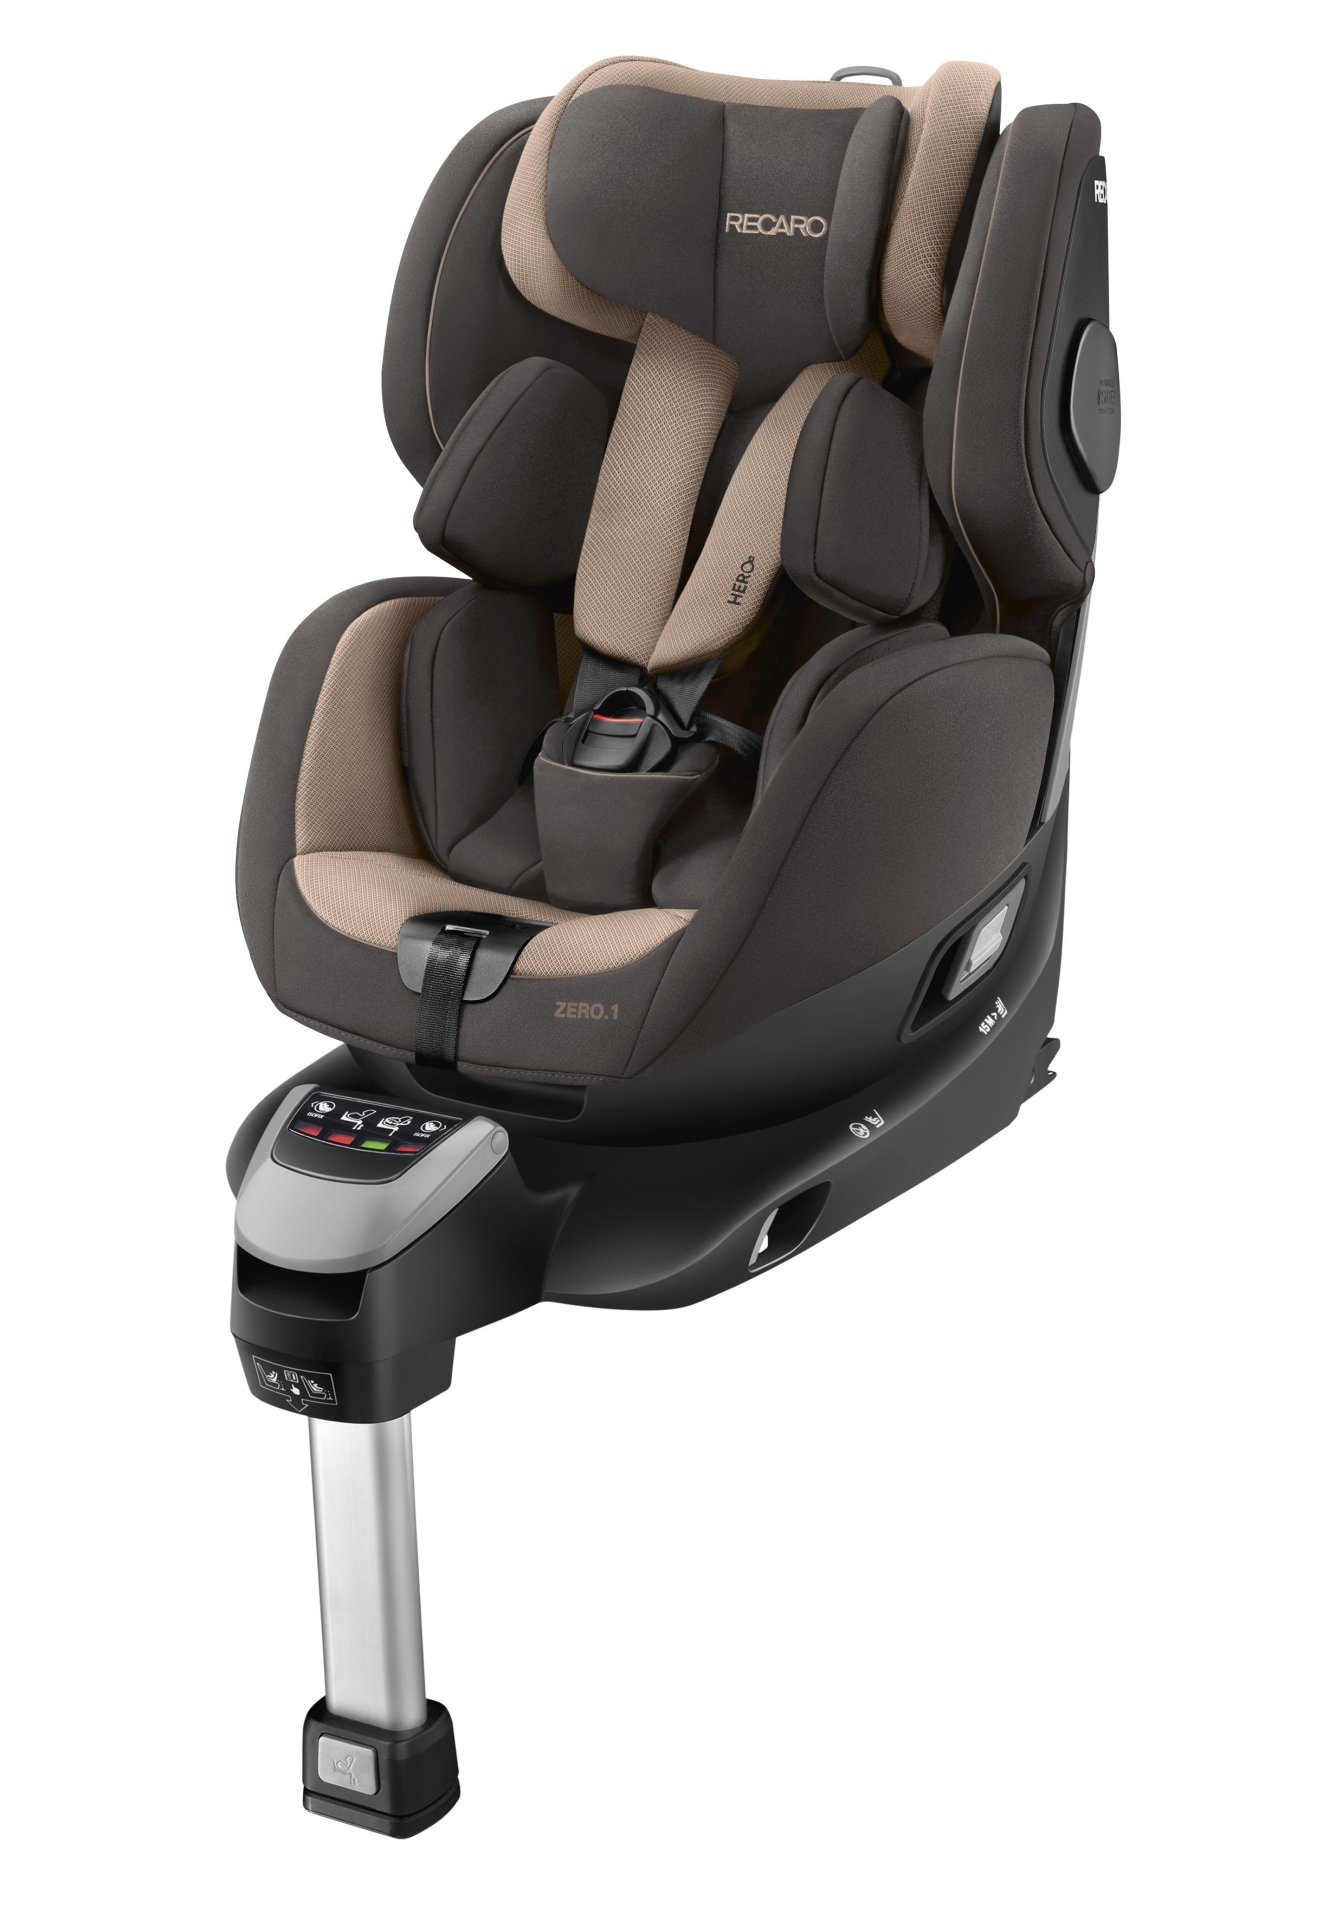 recaro reboarder zero 1 i size incl isofix base 2018 dakar sand buy at kidsroom car seats. Black Bedroom Furniture Sets. Home Design Ideas